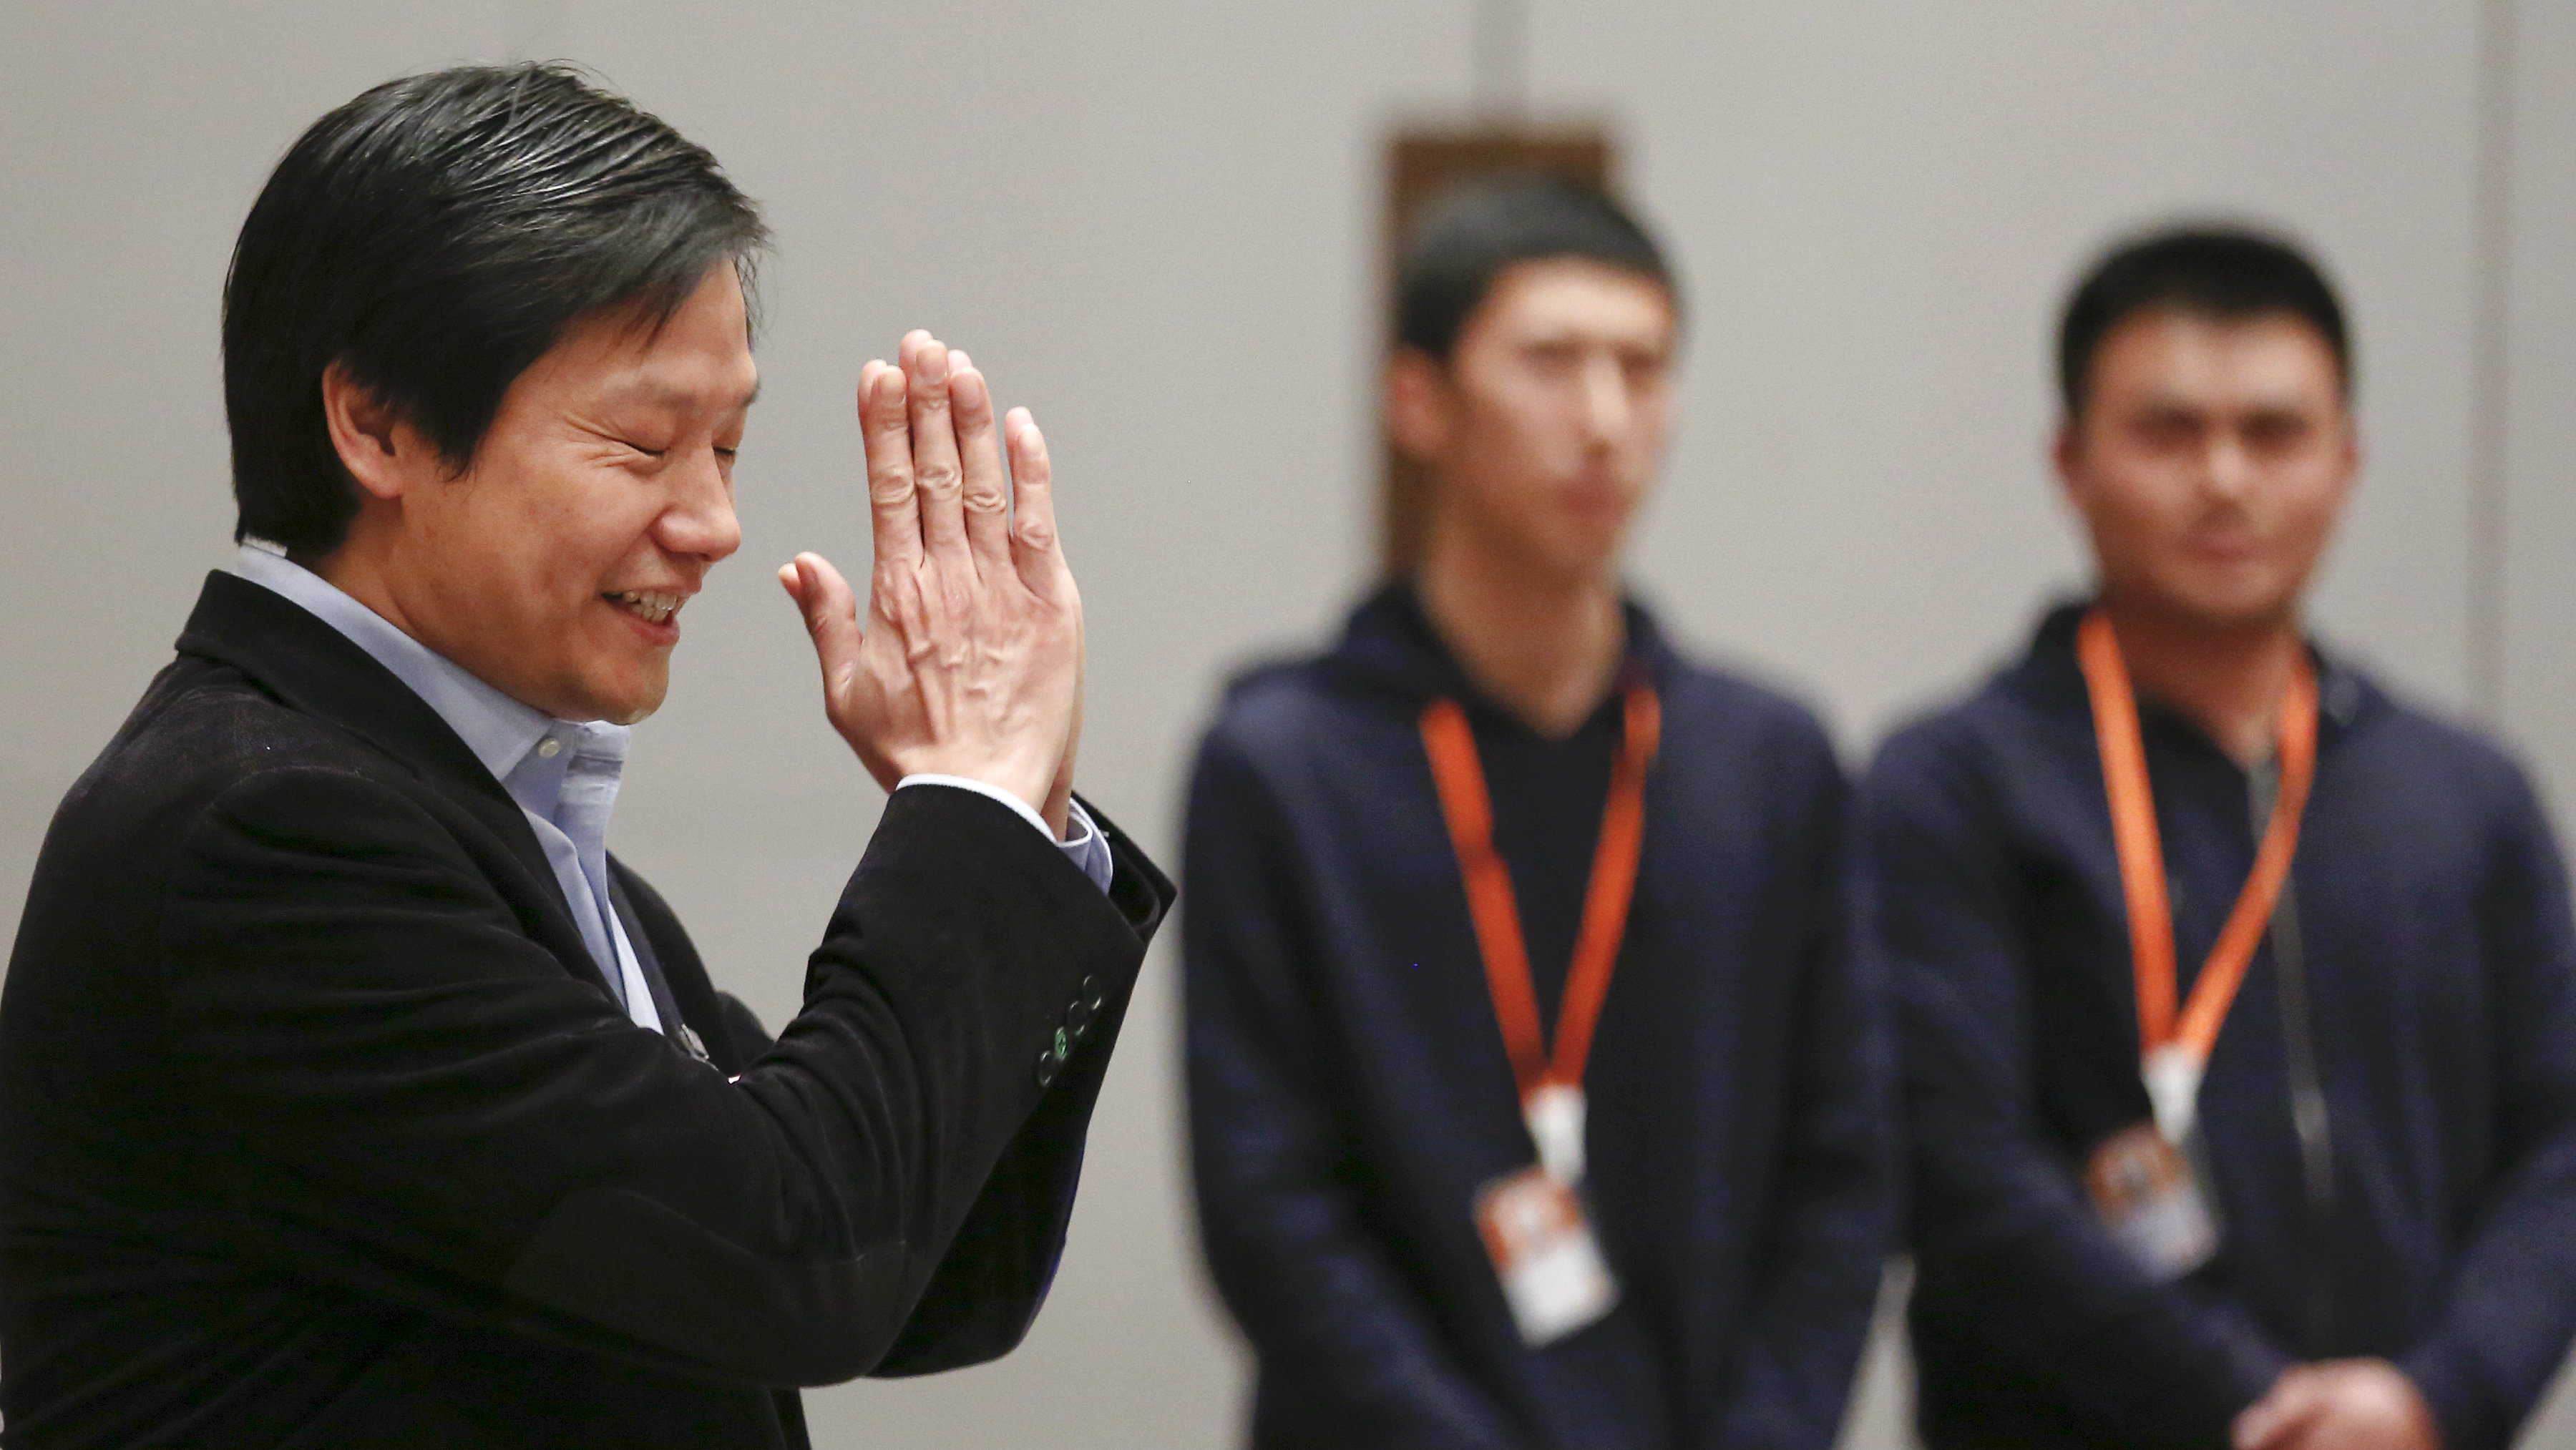 Lei Jun, founder and CEO of China's mobile company Xiaomi gestures as he attends a press conference during the period of Chinese People's Political Consultative Conference (CPPCC) and National People's Congress (NPC) in Beijing, China